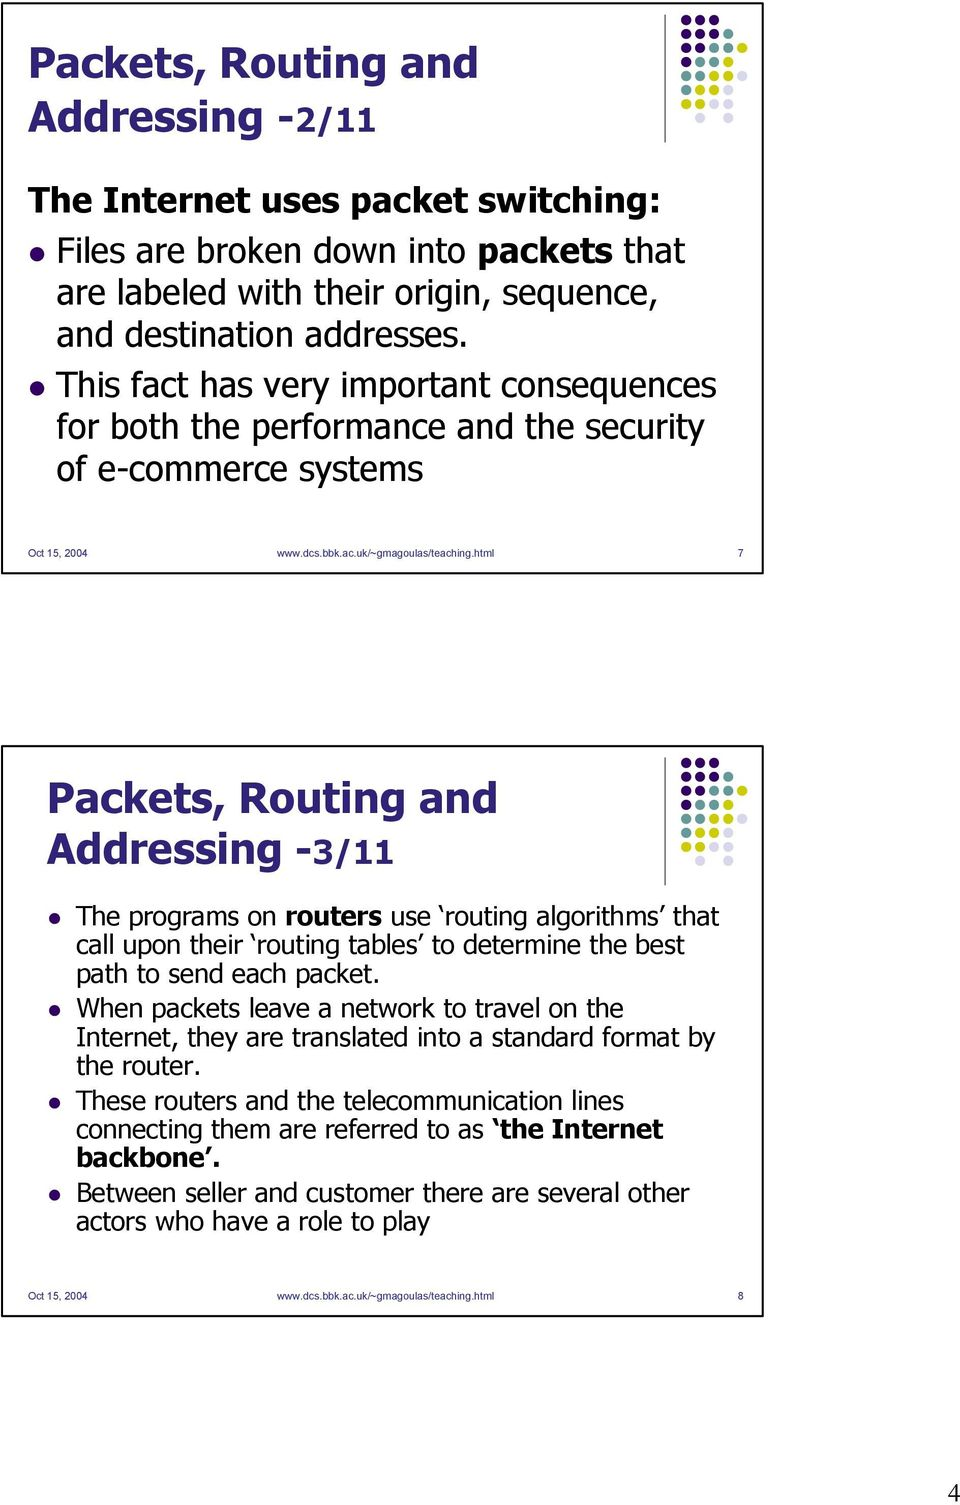 html 7 Packets, Routing and Addressing -3/11 The programs on routers use routing algorithms that call upon their routing tables to determine the best path to send each packet.